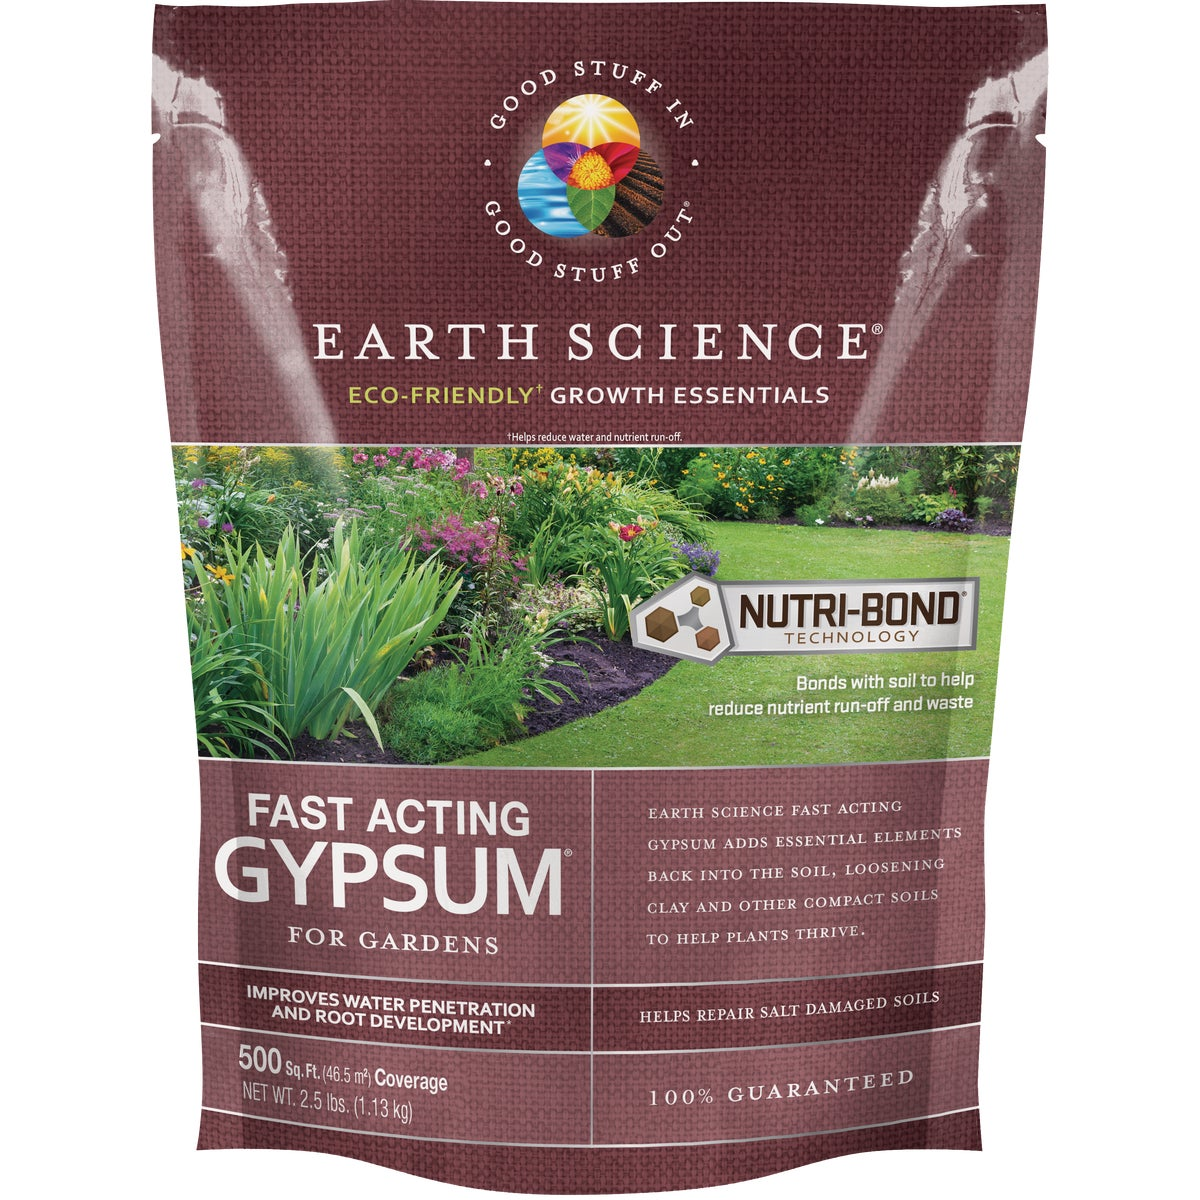 2.5LB GARDEN GYPSUM - 10613-6 by Encap Llc